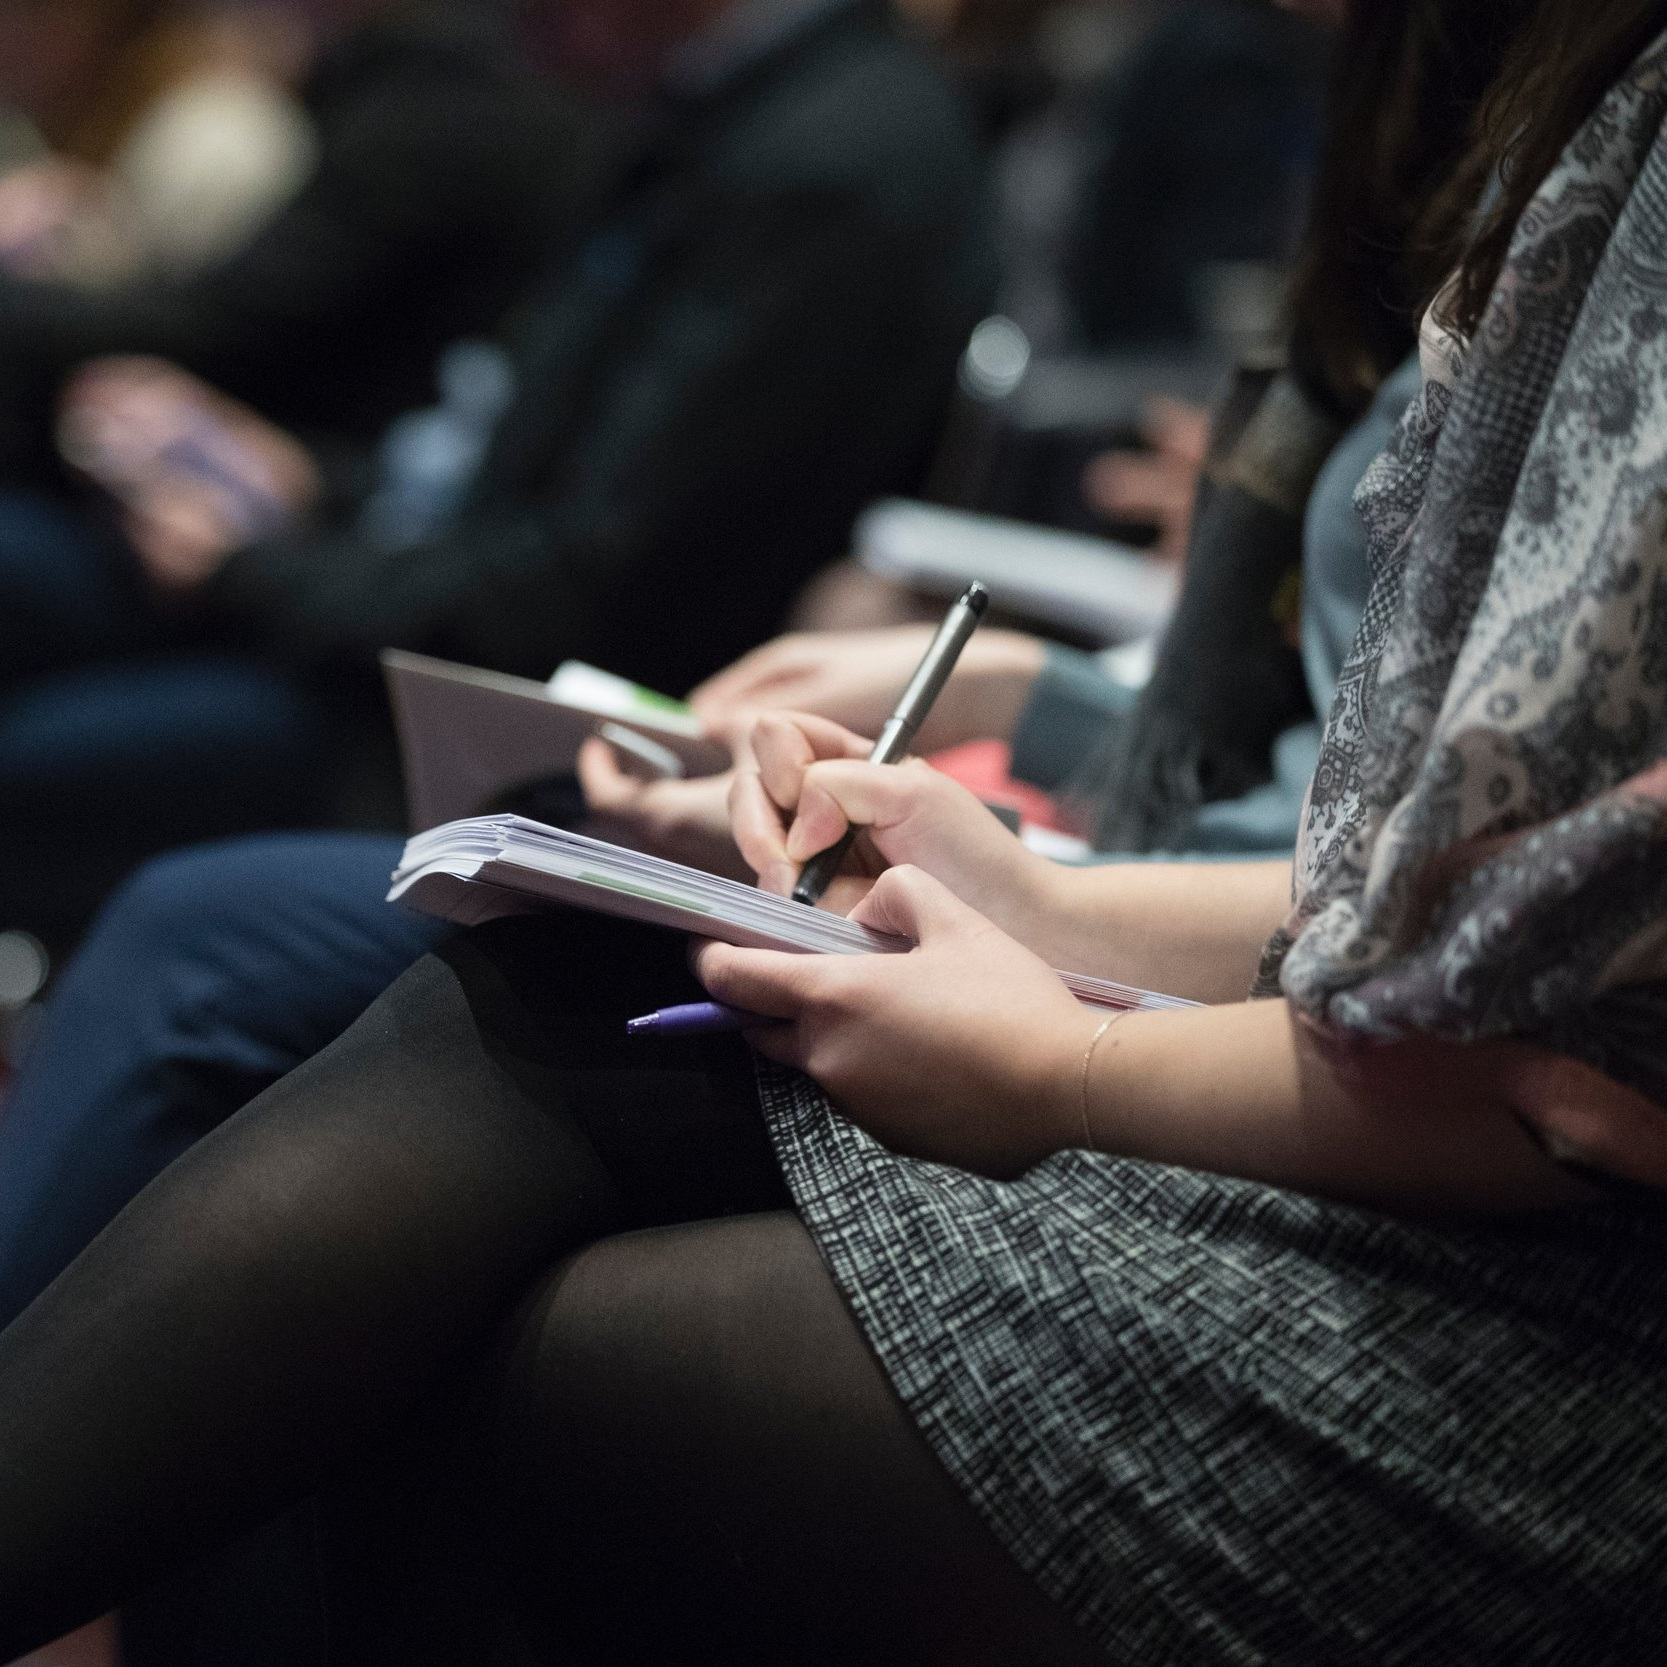 FINANCIAL SEMINARS - Our seminars include non-conflicted, expert advice on a range of financial topics, including household budgeting, debt repayment, risk management/insurance, college savings and retirement planning.